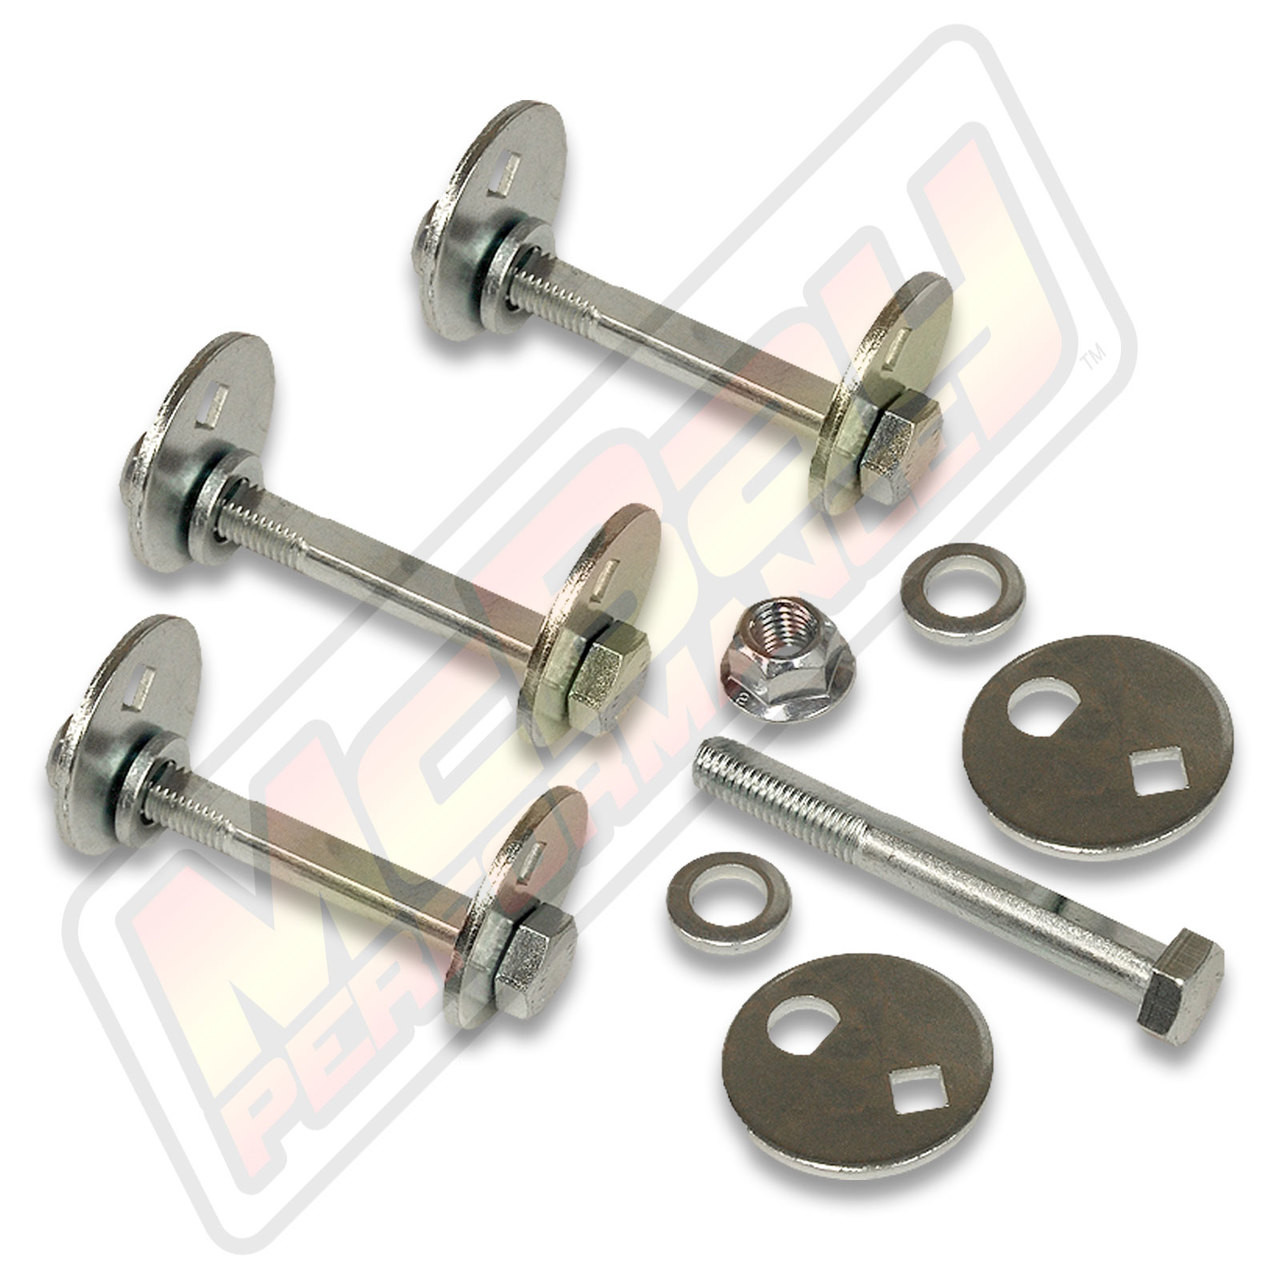 41-778-4 - 1997-2004 Ford F-150 Expedition Front Alignment Camber Kit | McBay Performance